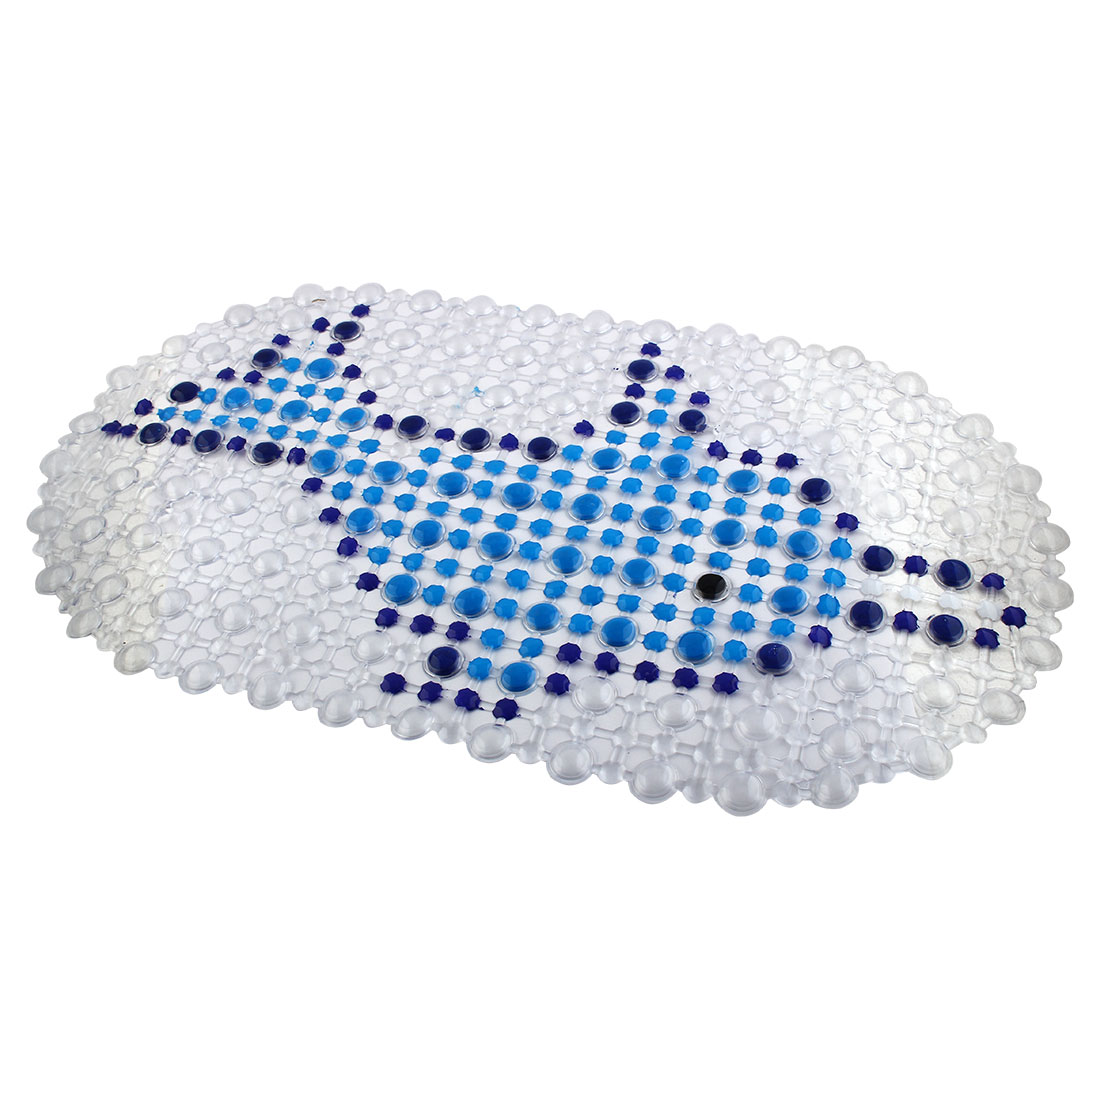 Hotel Home Bathroom Rubber Anti-skid Non Slip Shower Bath Floor Mat Cushion